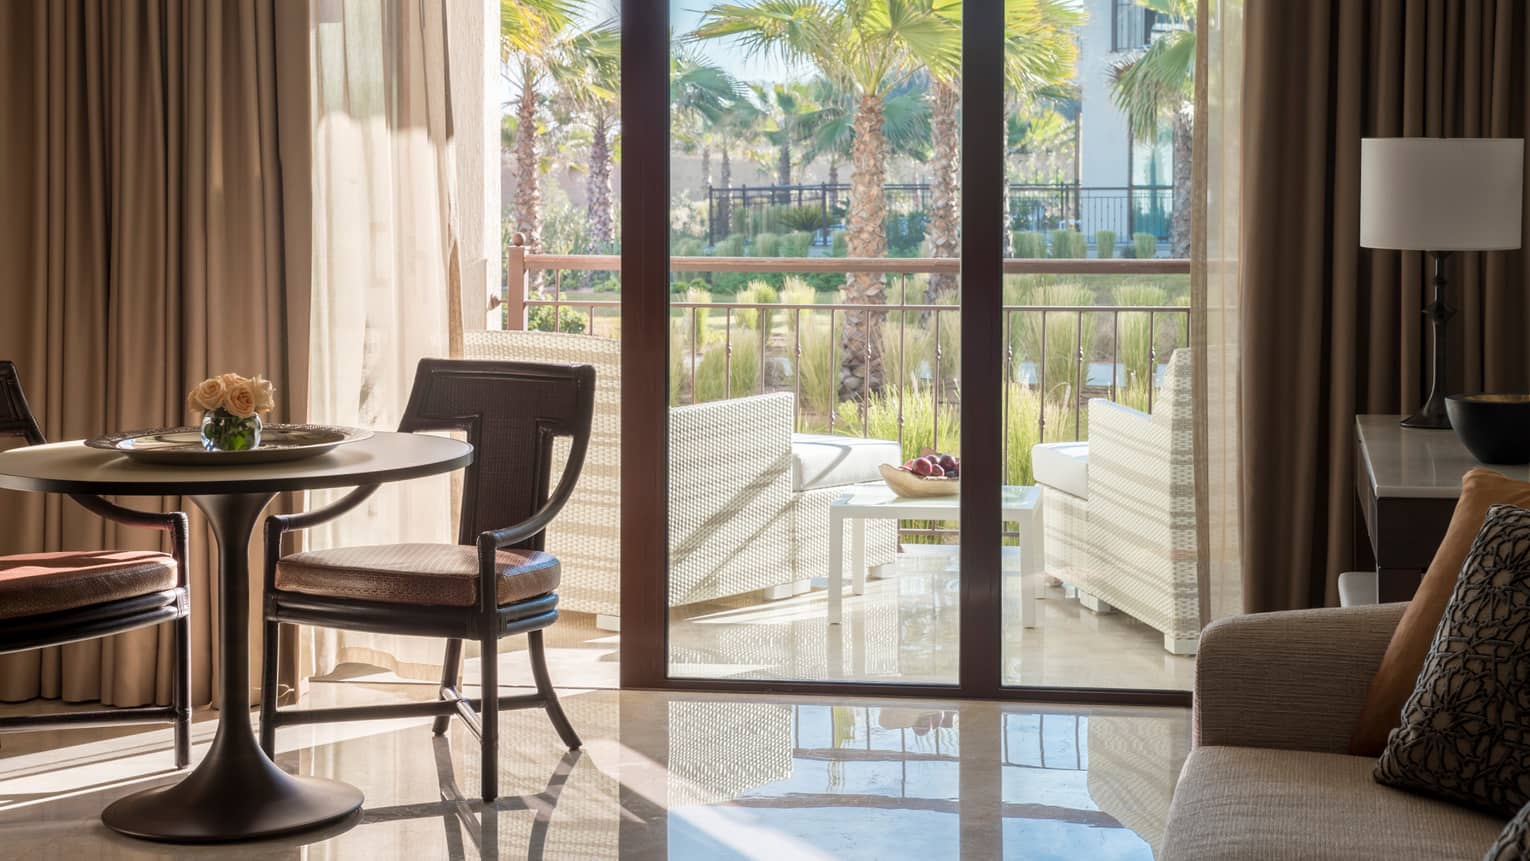 Garden-View Suite small dining table, chairs by sunny balcony doors with wicker armchairs, palm trees